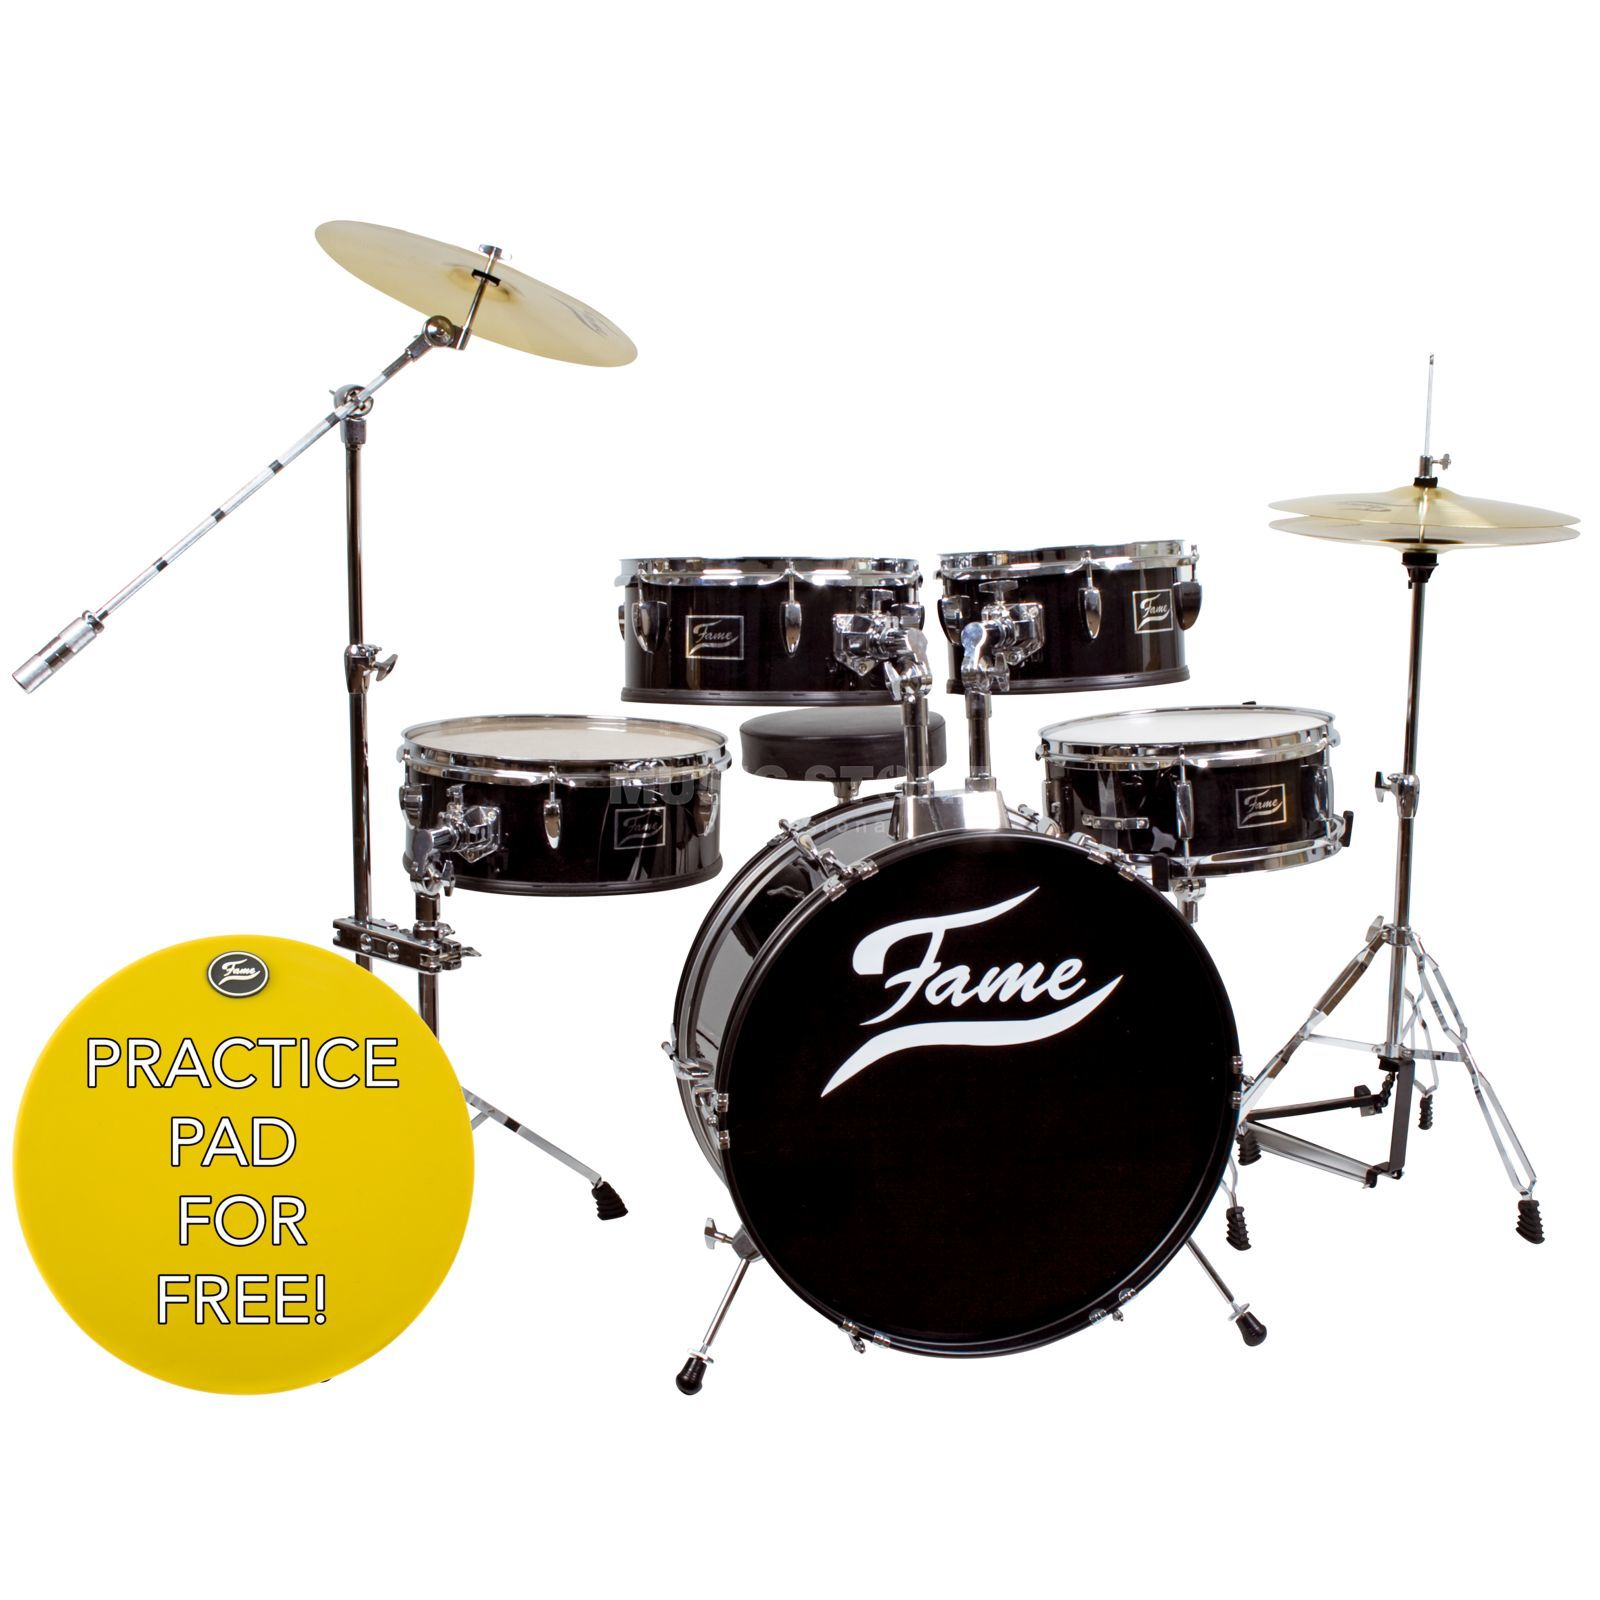 Fame Practice Set incl. Cymbals & kruk Productafbeelding